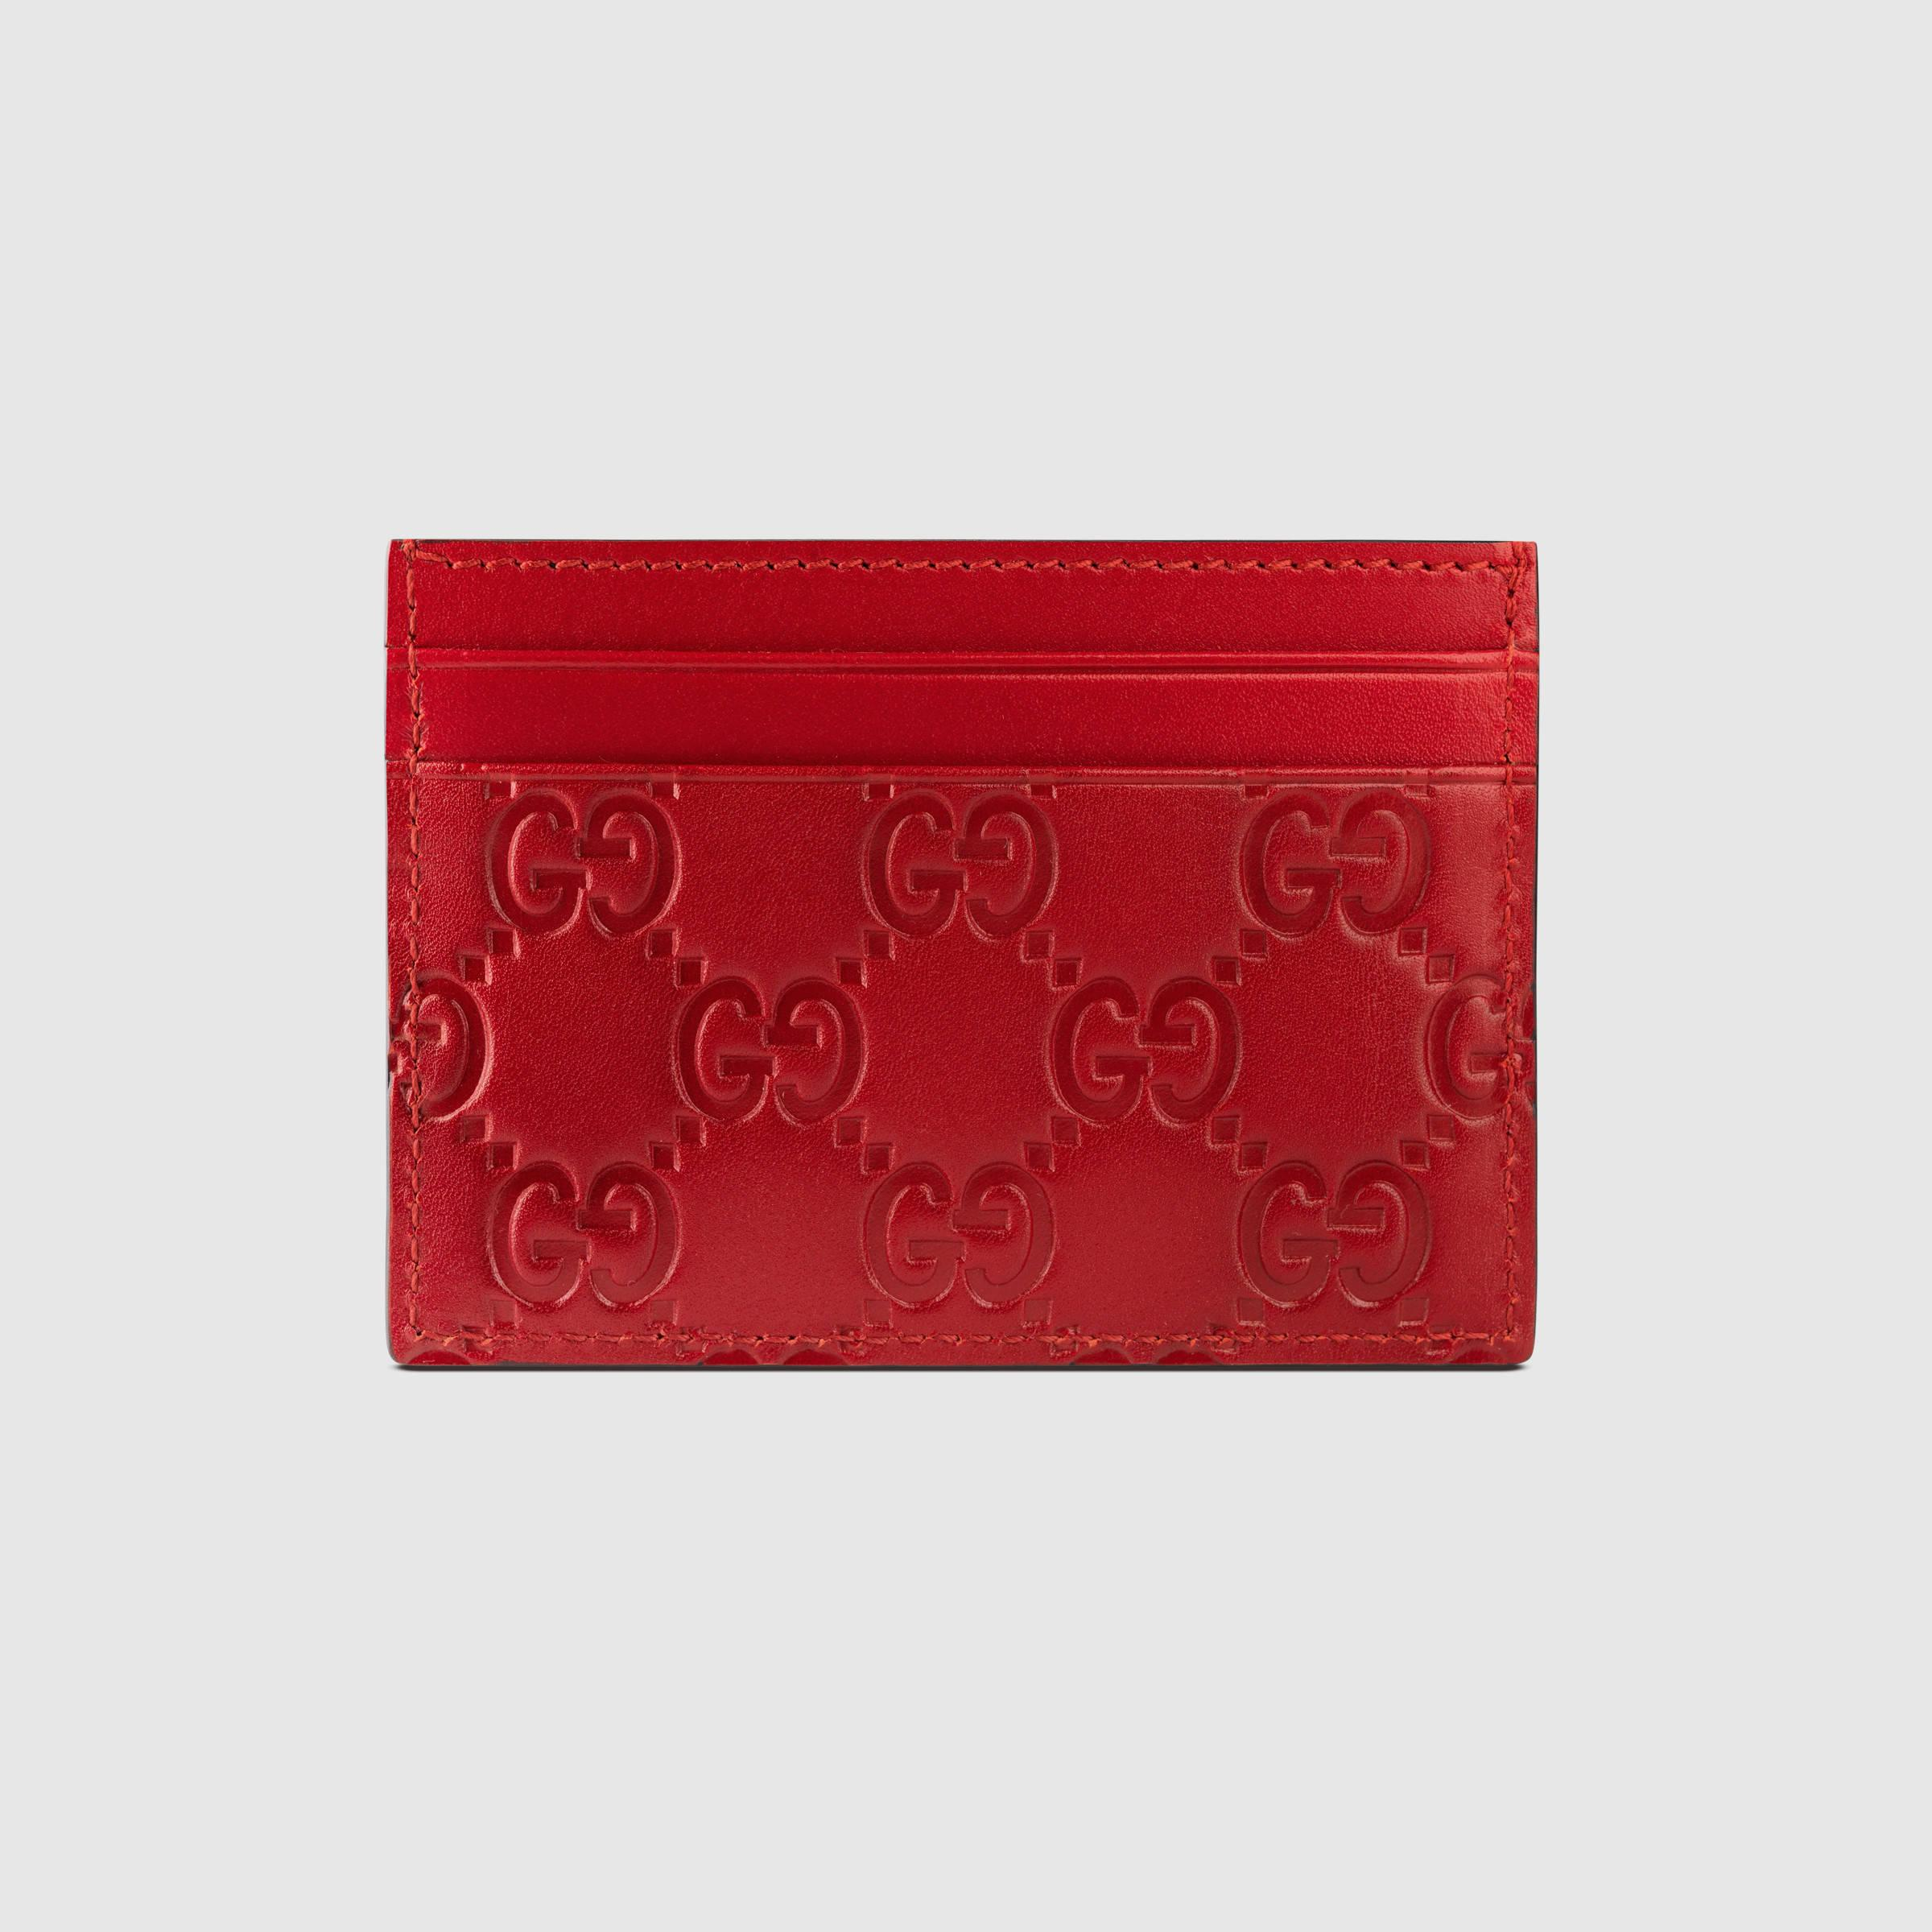 Lyst - Gucci Signature Leather Card Case for Men